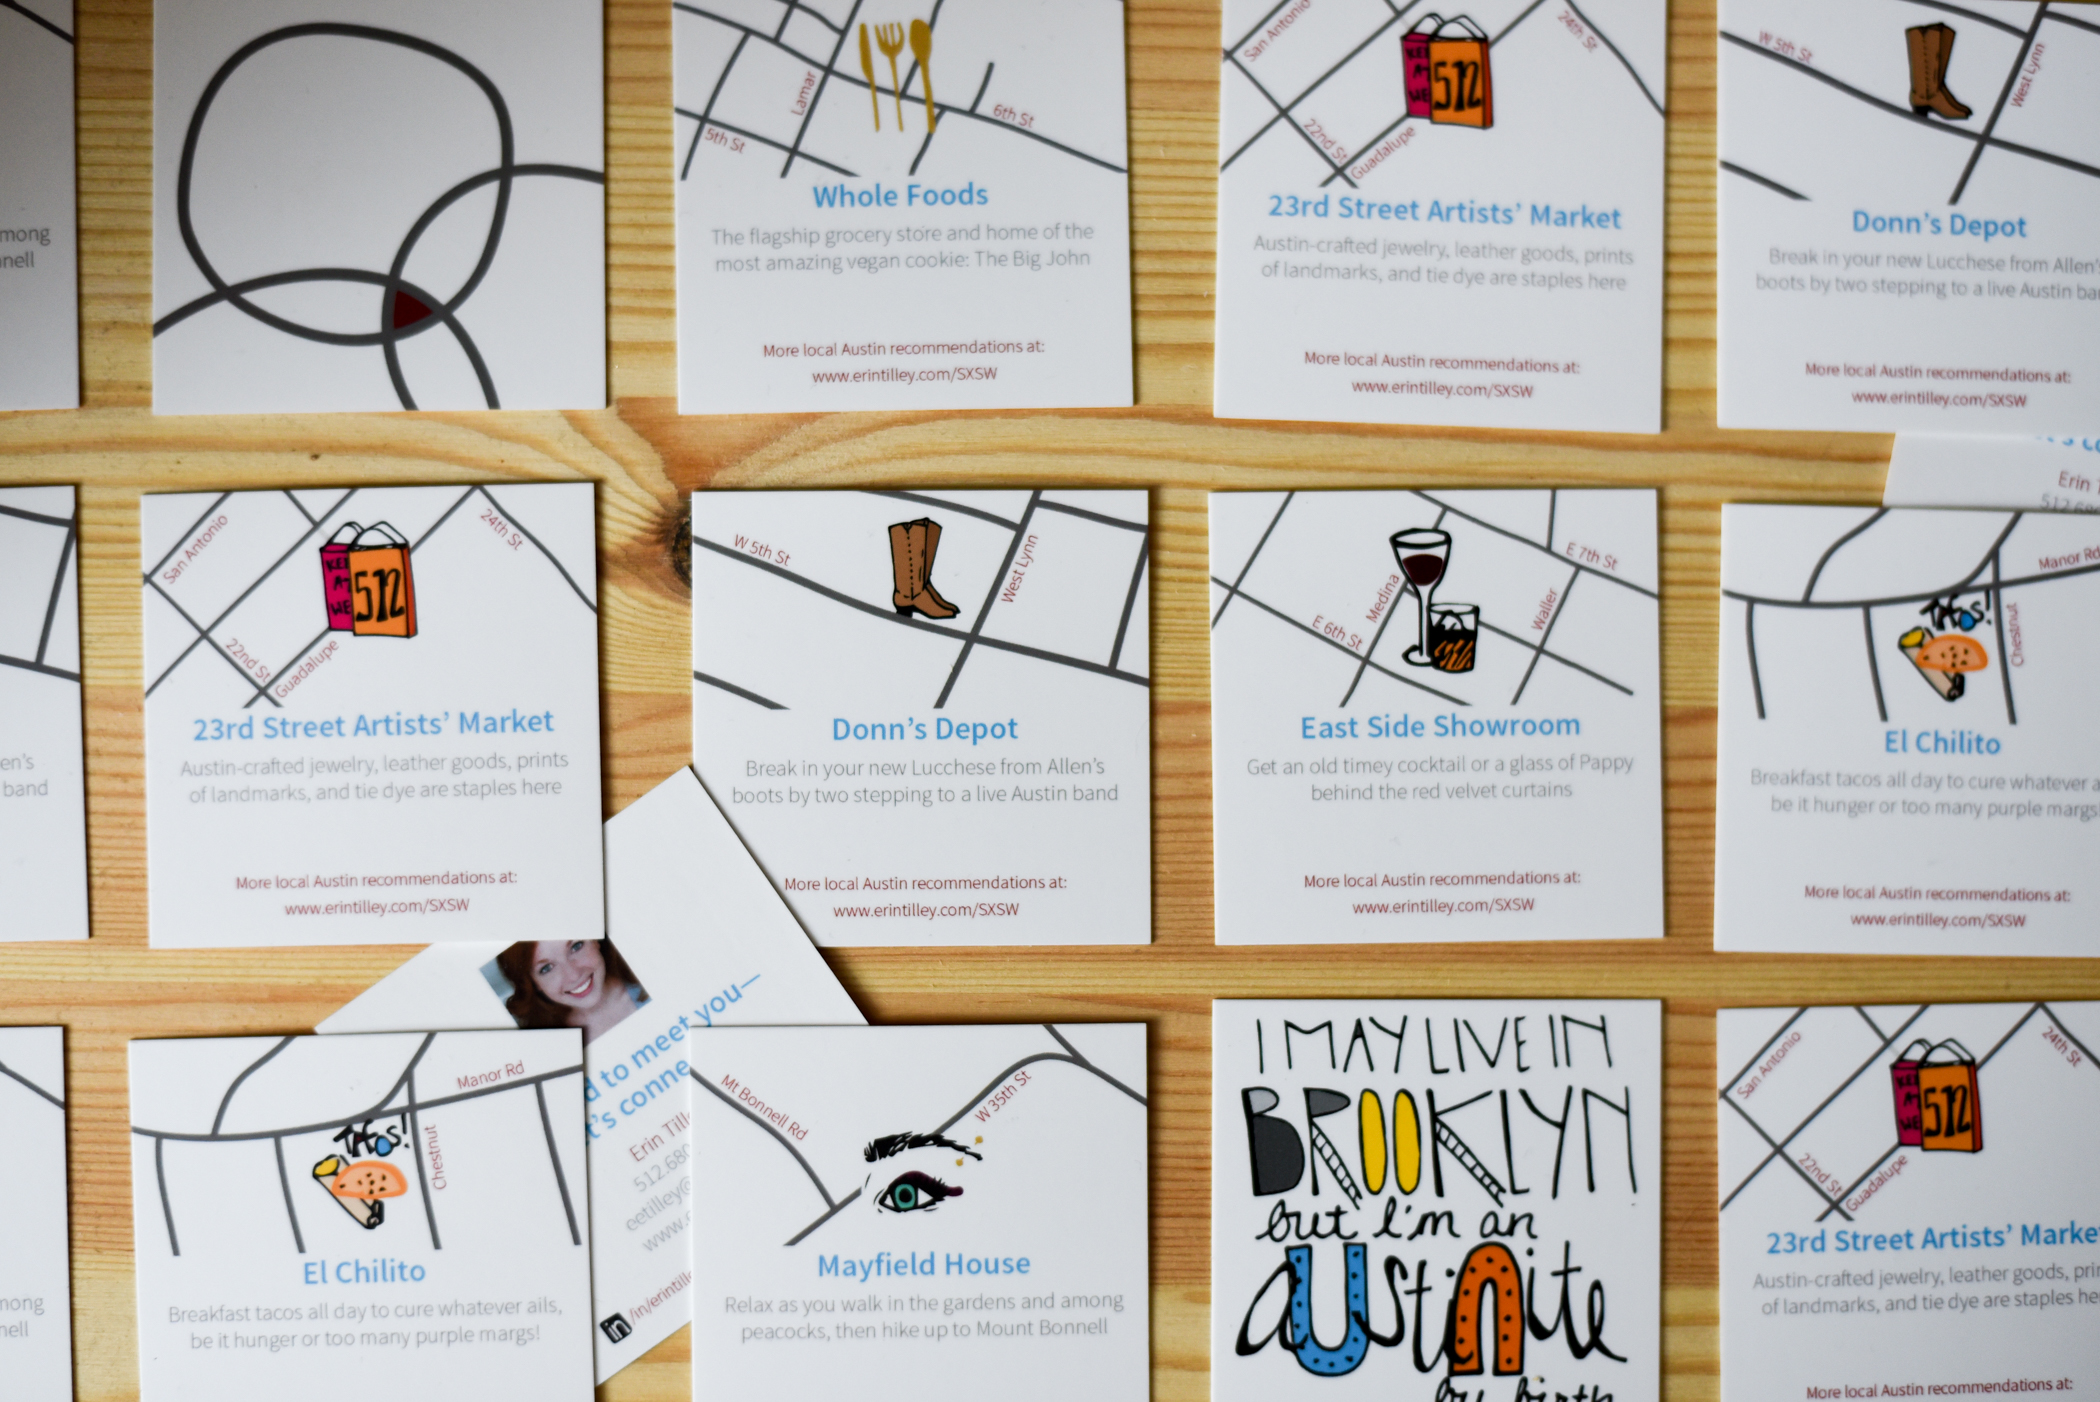 Business cards with local recommendations